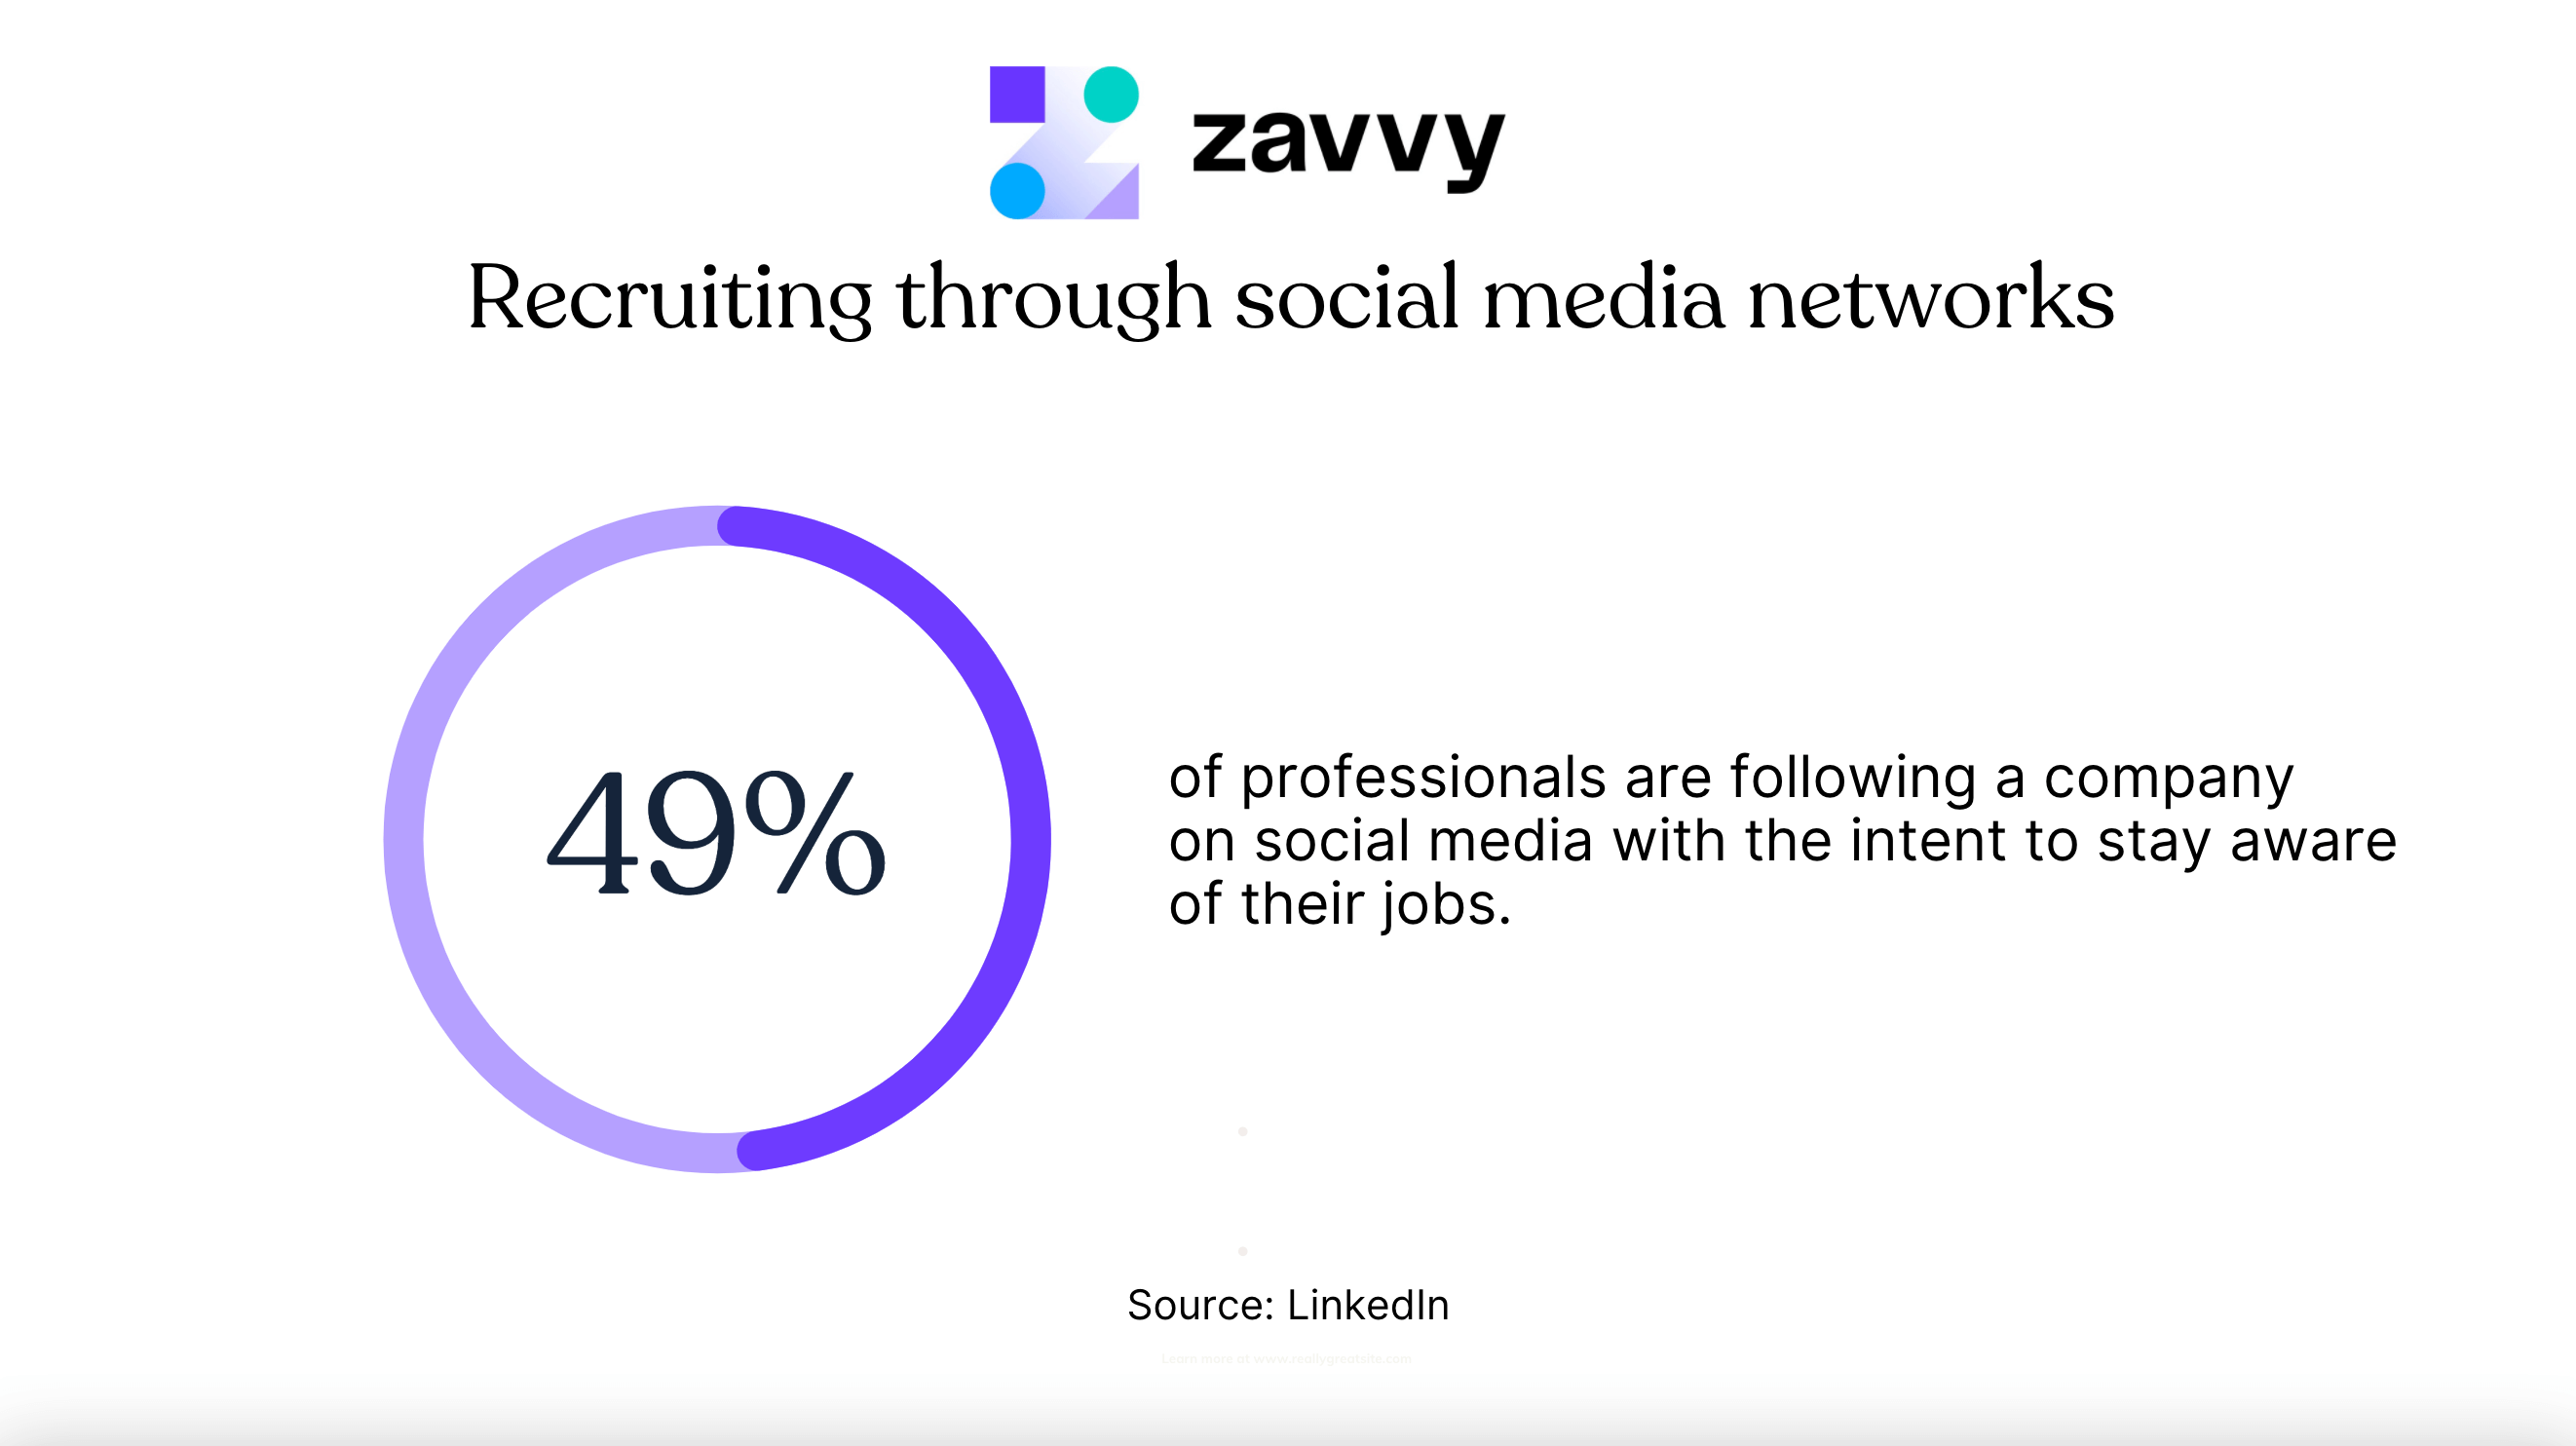 Recruiting through social media networks: 49% of professionals are following a company with the intent to keep track of their jobs